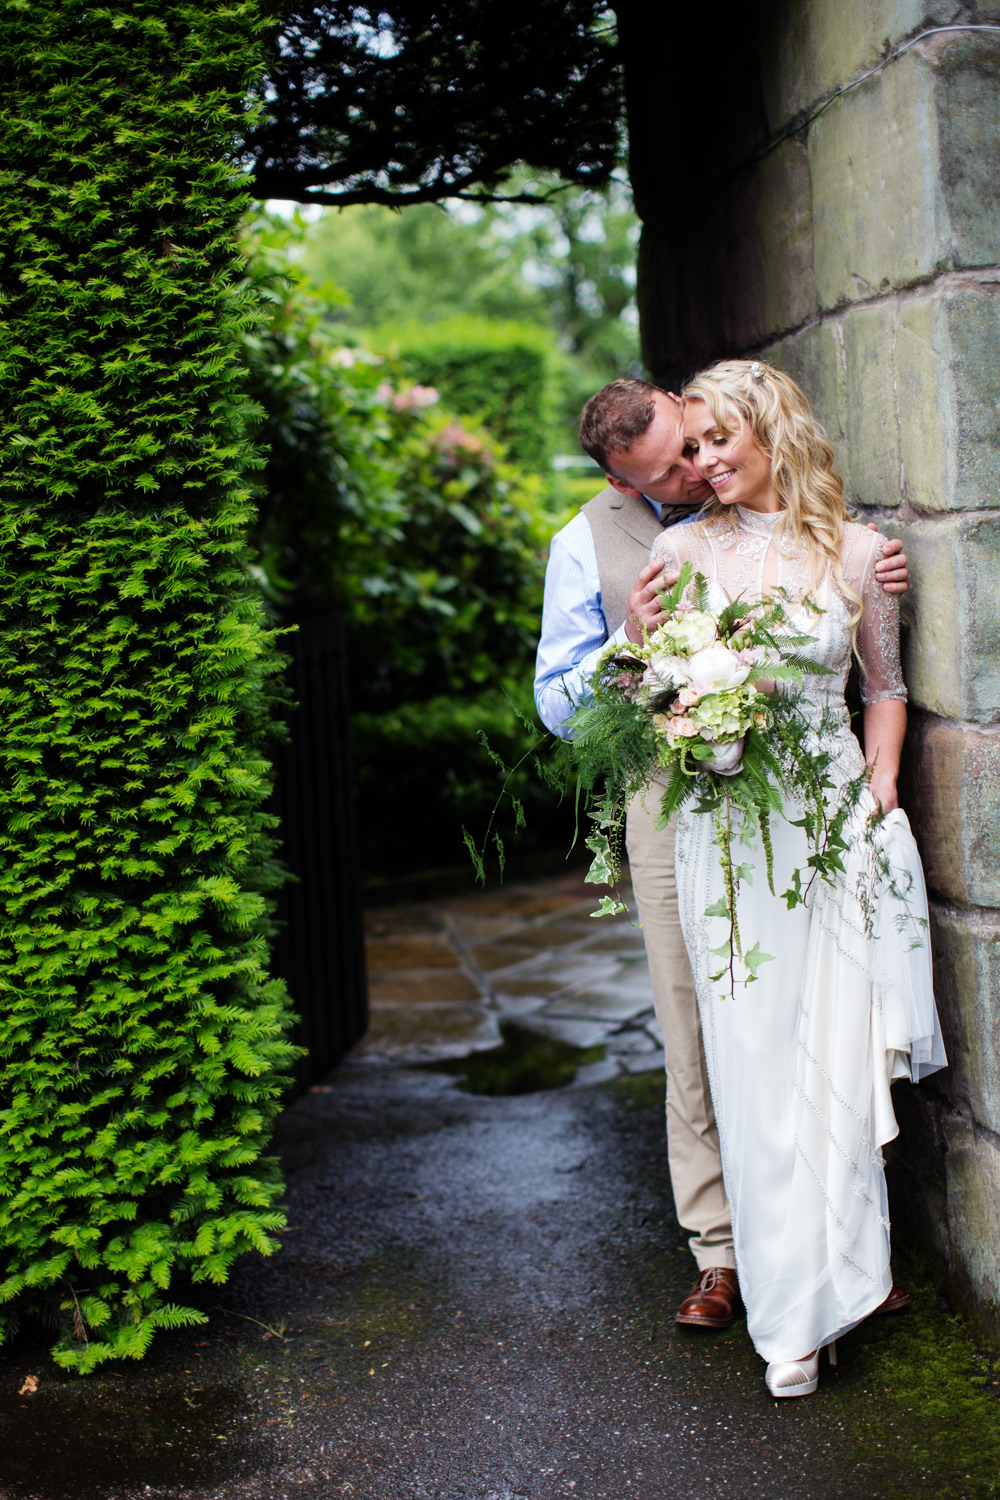 Bride and groom kiss at a Gawsworth hall wedding in Macclesfield